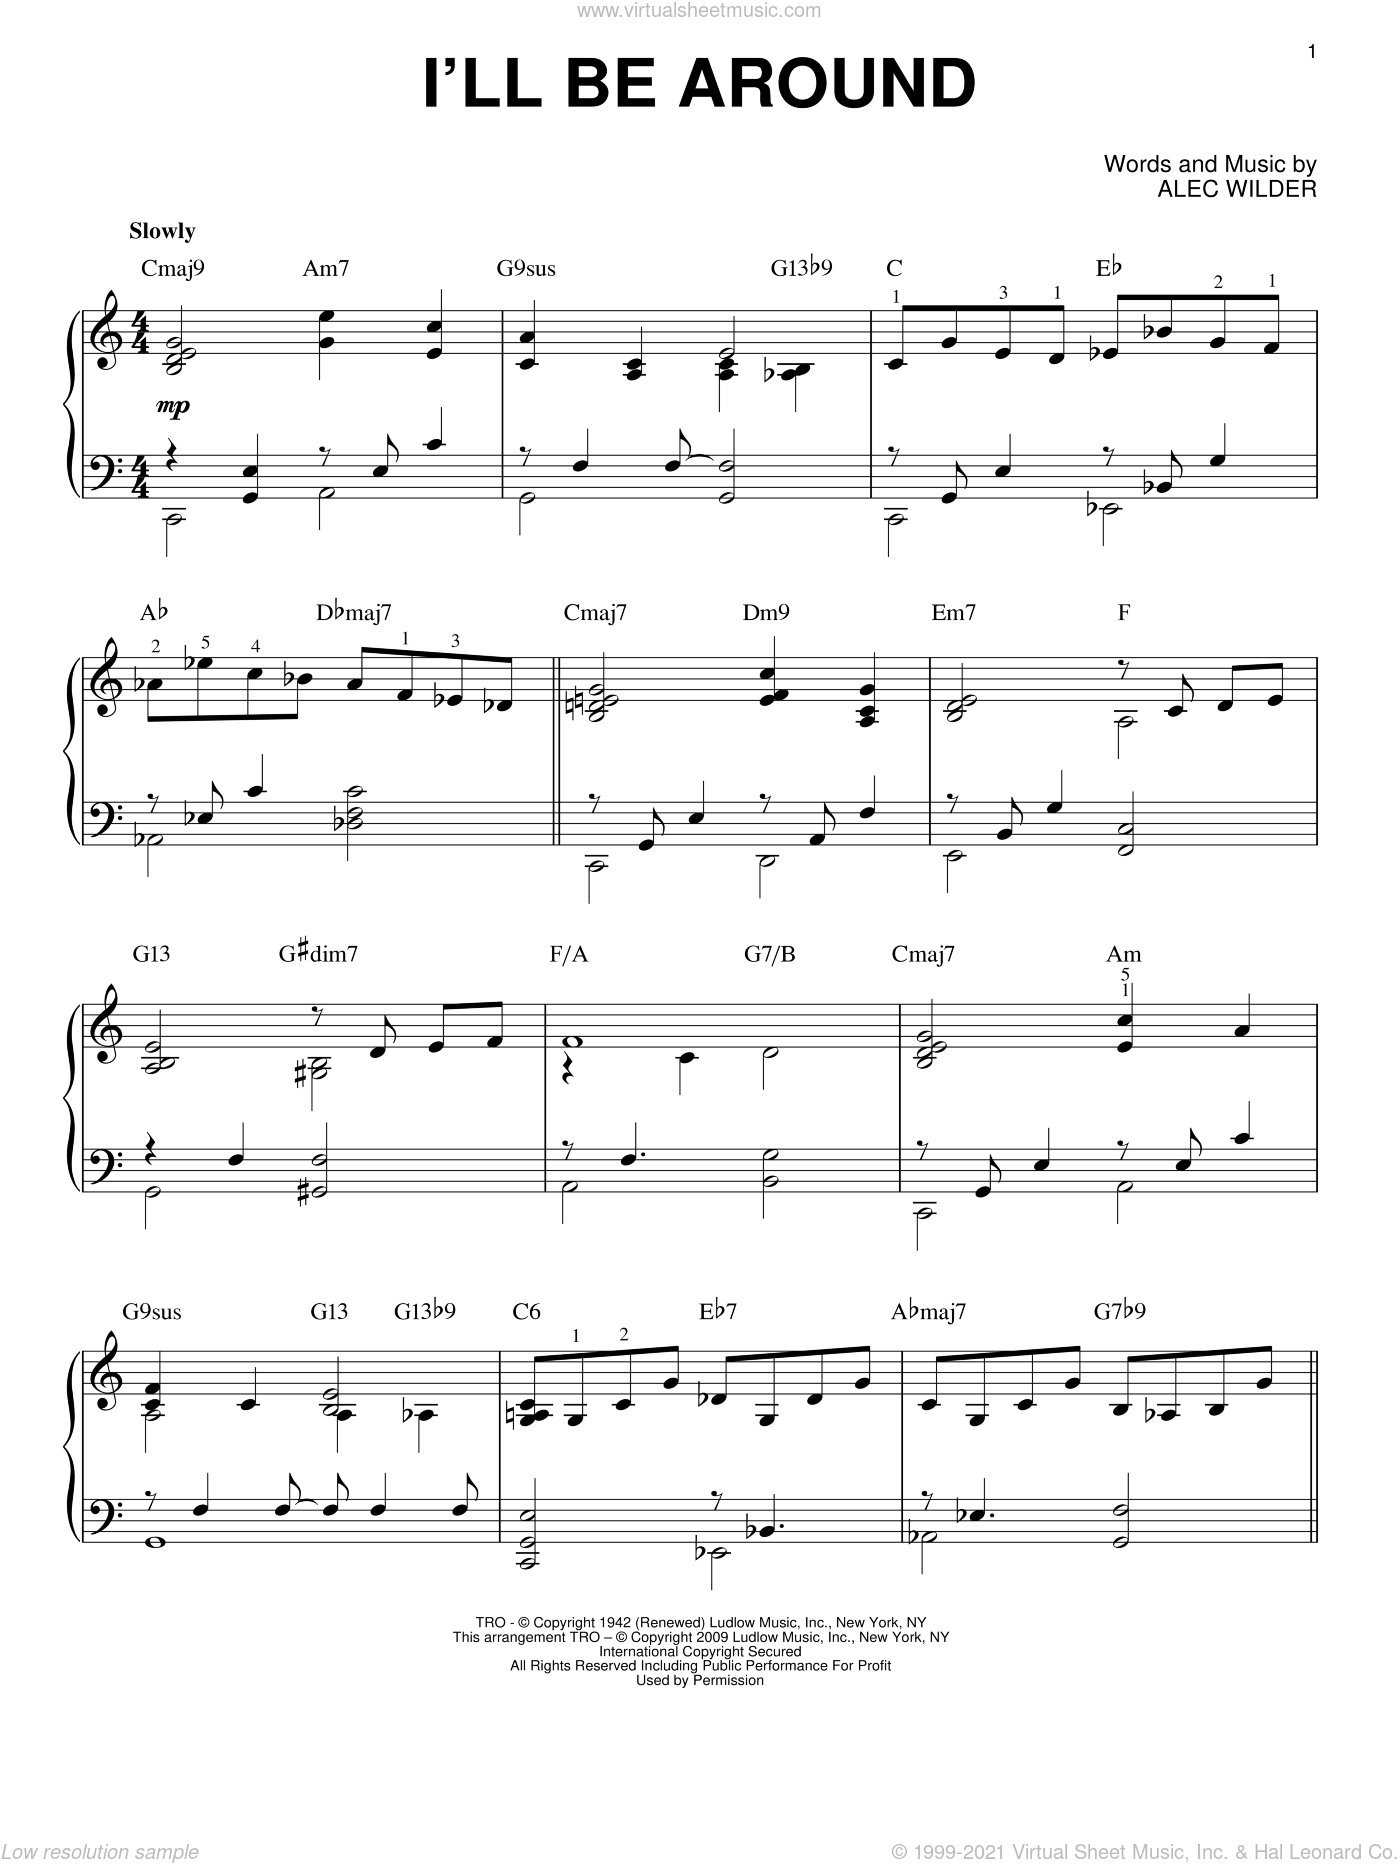 I'll Be Around sheet music for piano solo by Alec Wilder, intermediate skill level